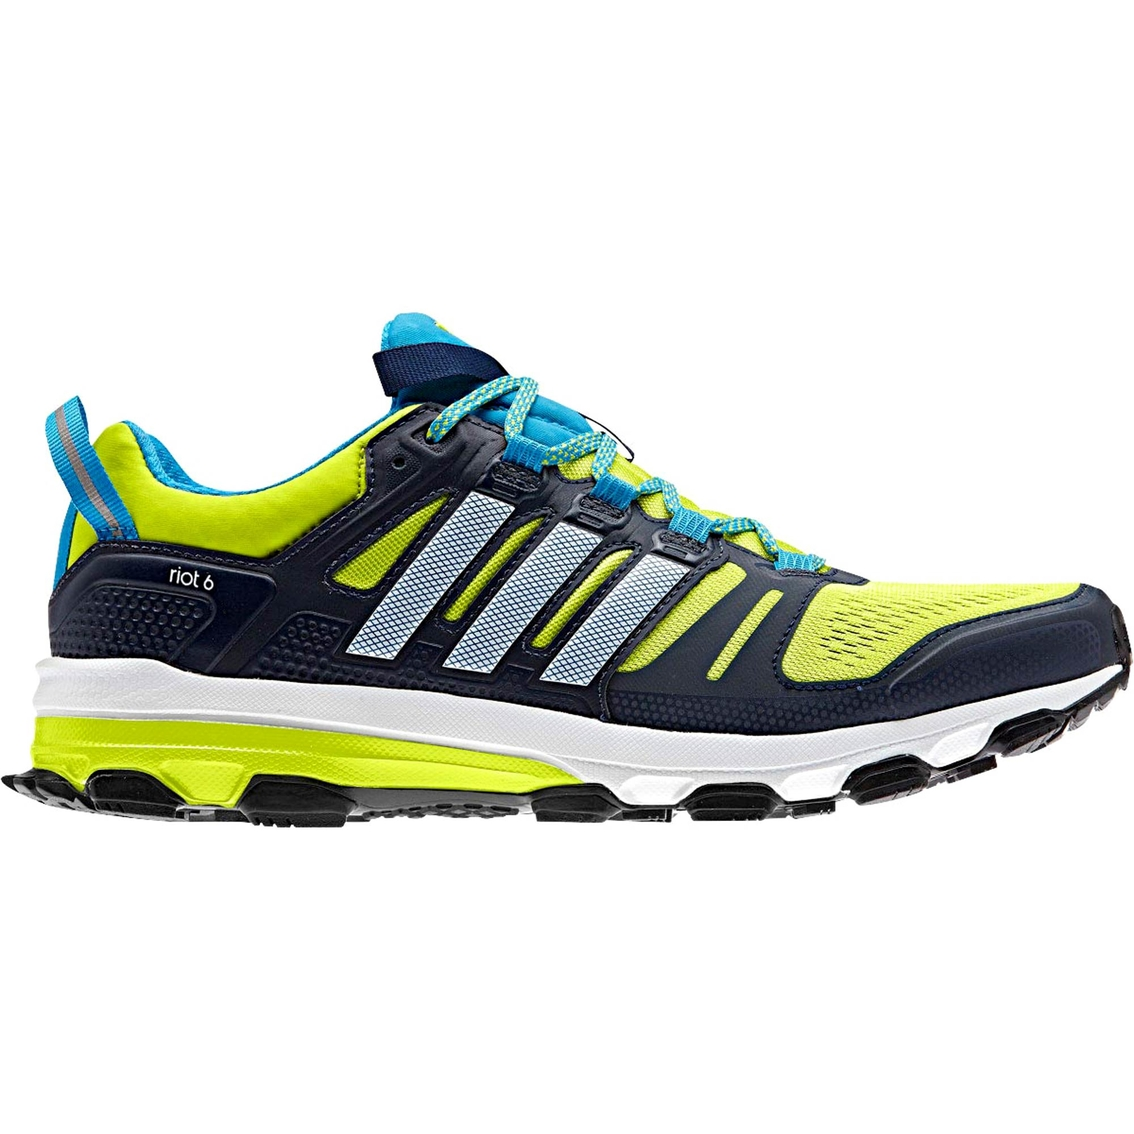 6c621fe68bc97 Adidas Outdoor M29354 Supernova Riot 6 Trail Running Shoes